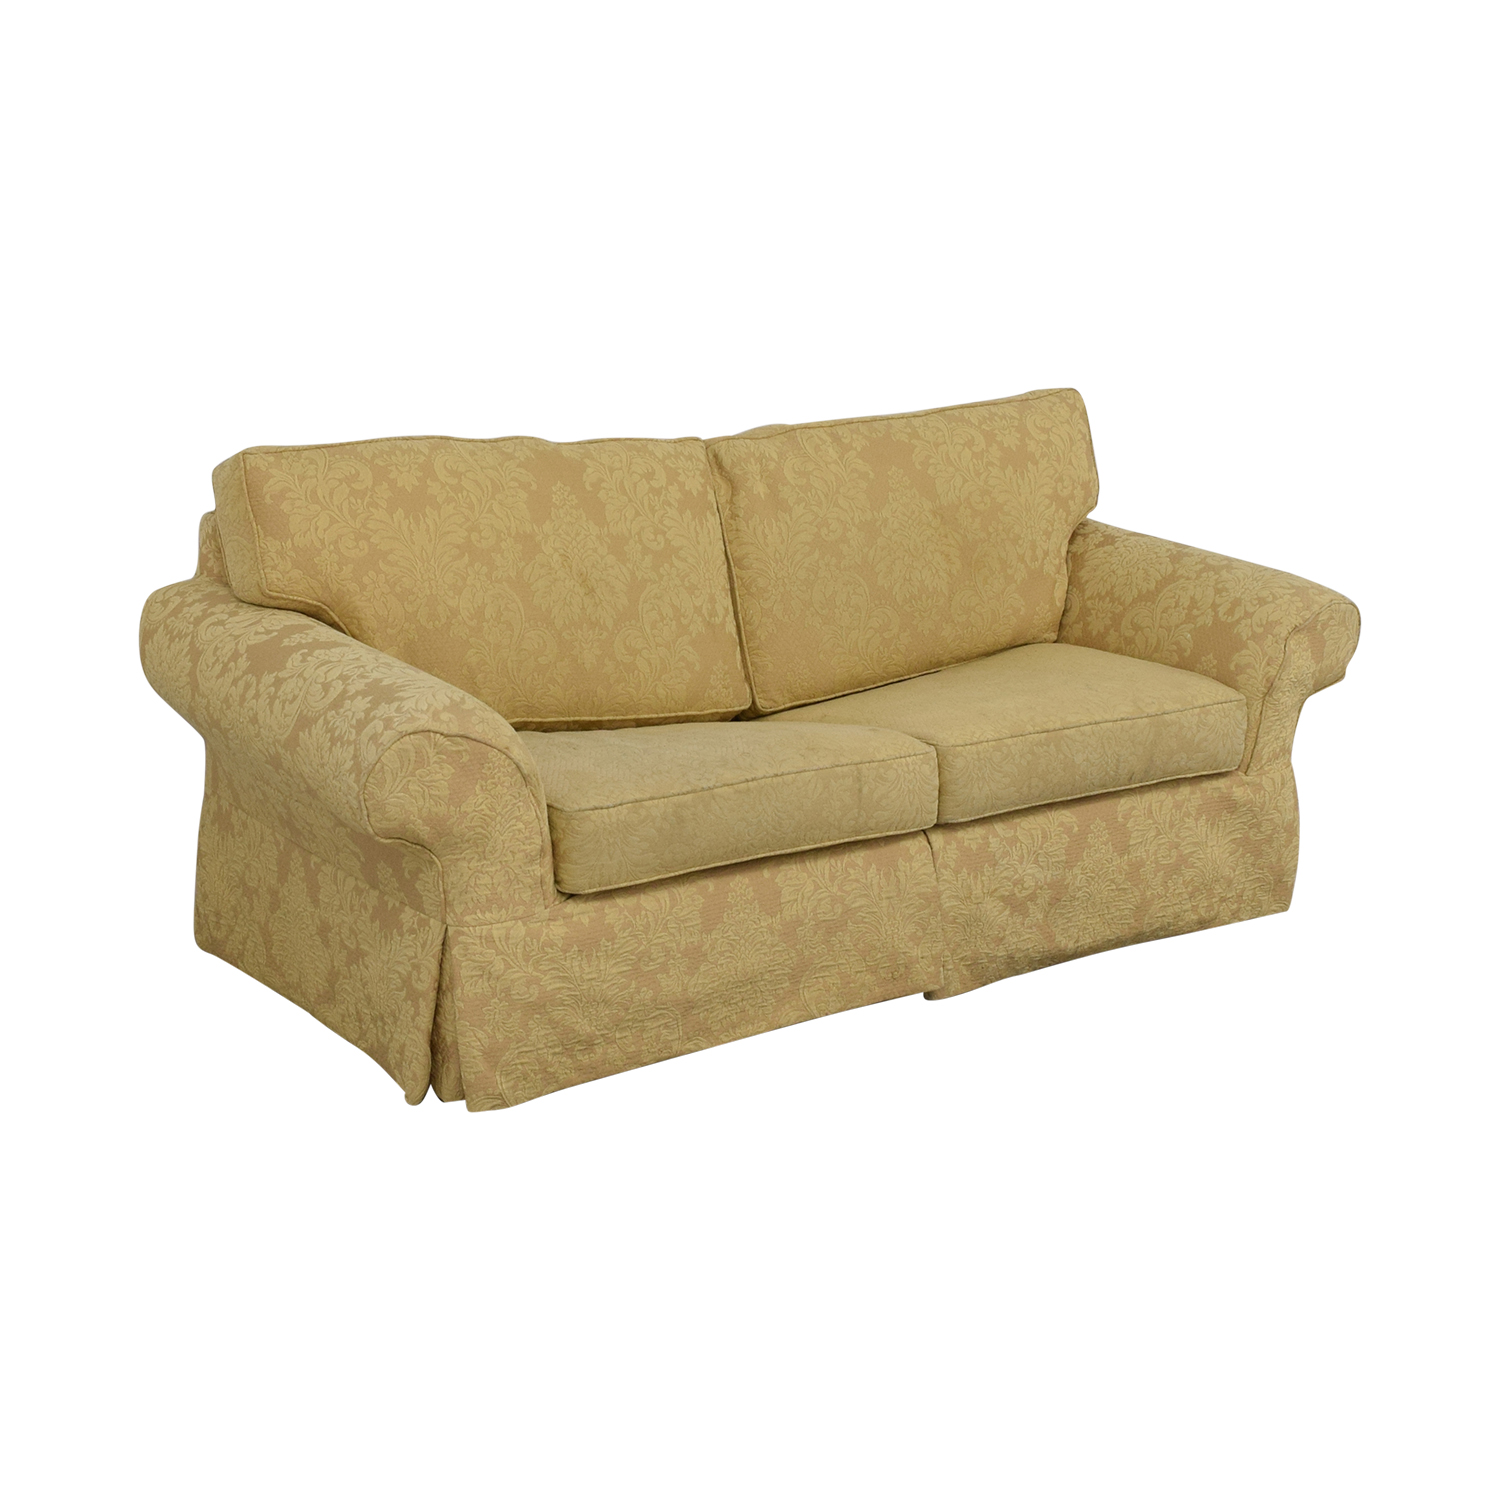 Domain Home Domain Home Portofino Sofa on sale